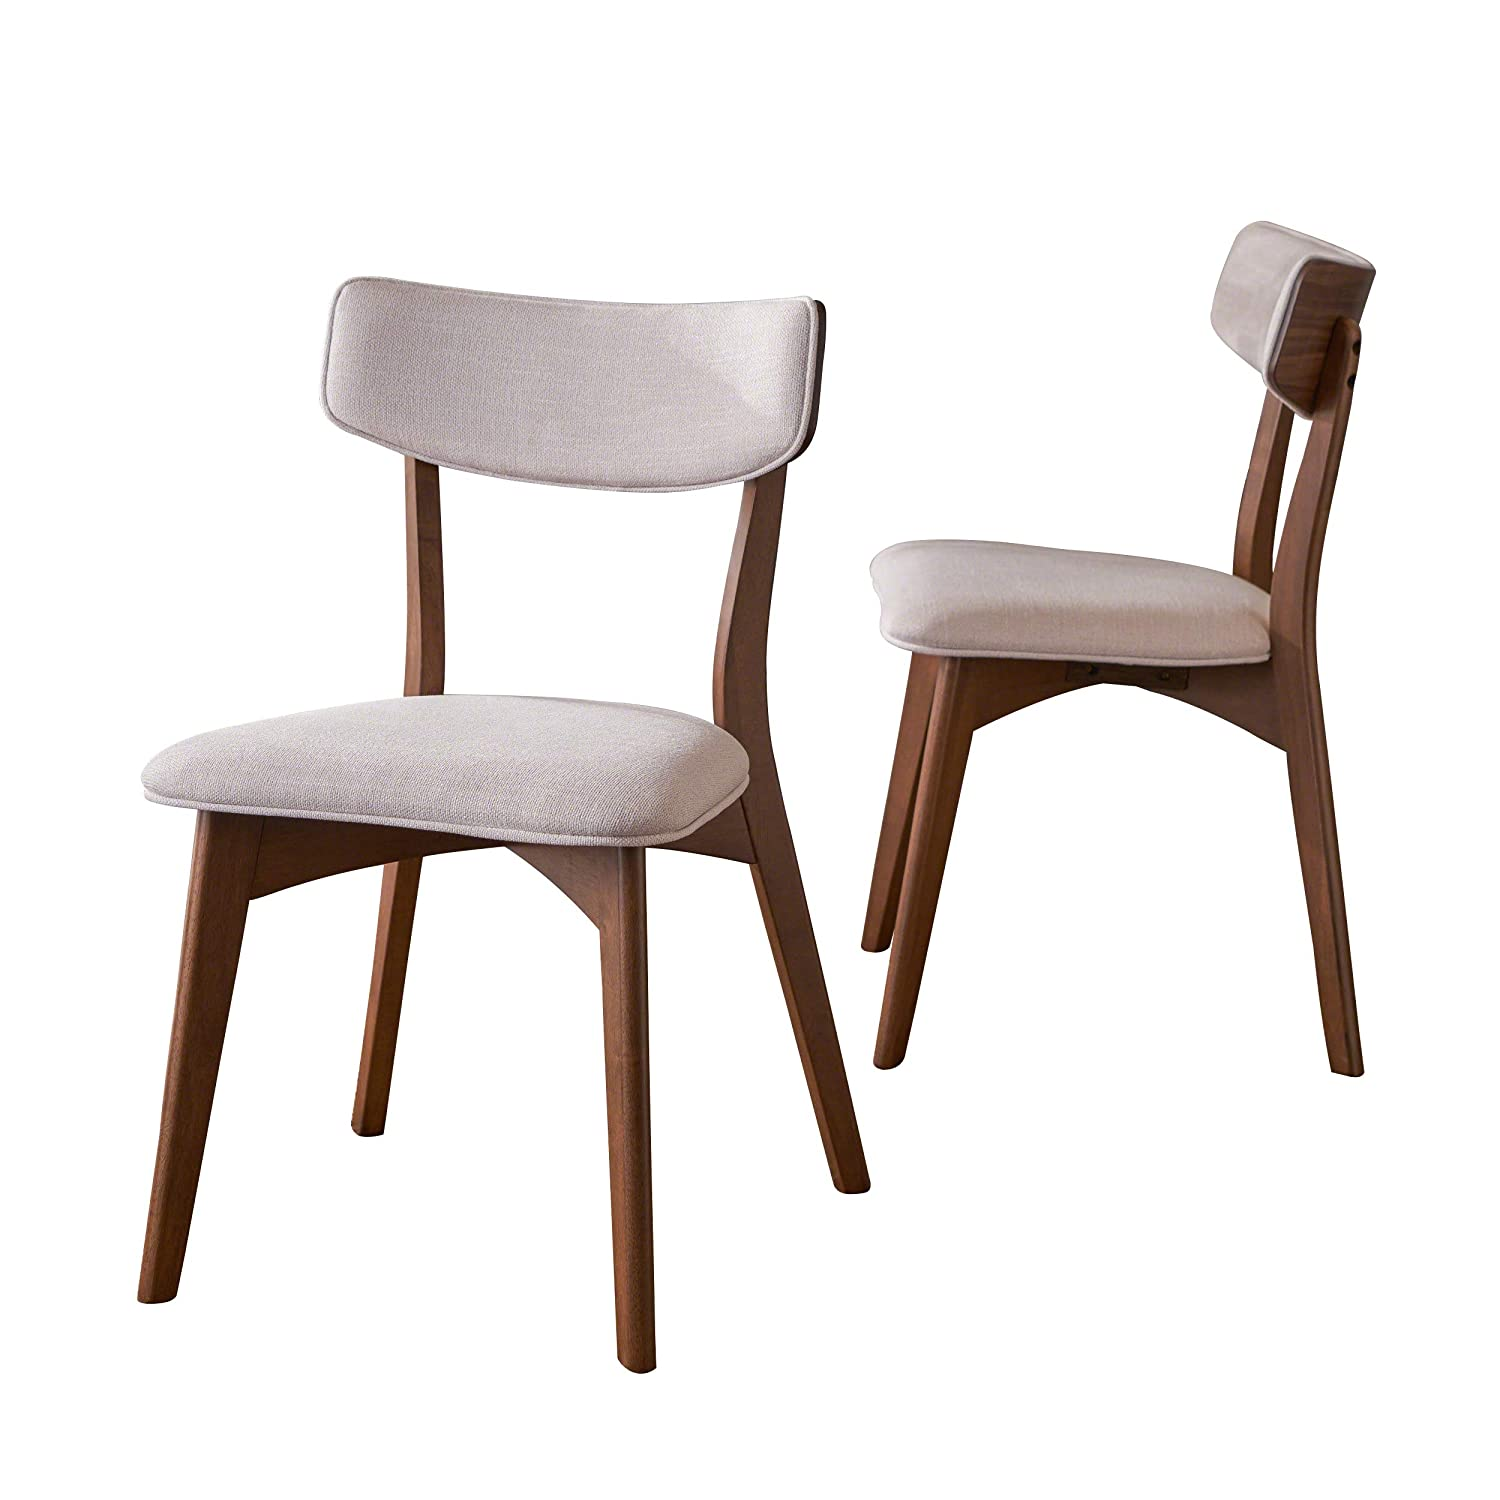 Amazon com molly mid century modern light beige dining chairs with natural walnut finished rubberwood frame set of 2 chairs